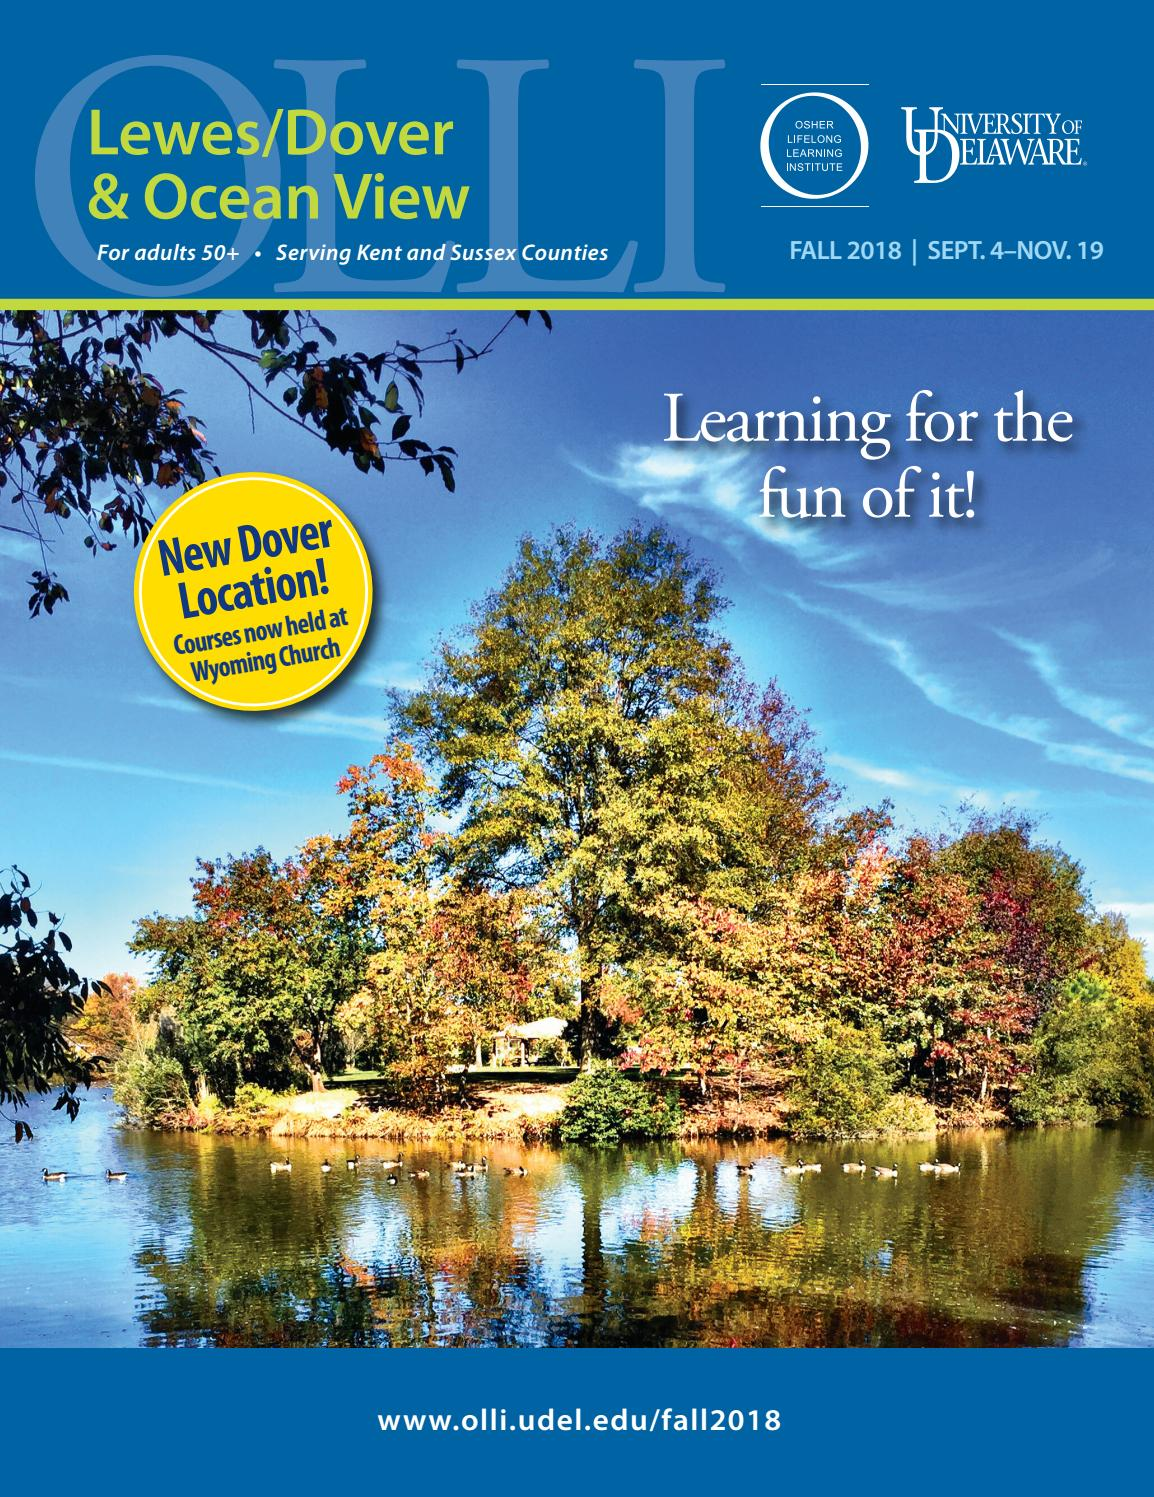 UD Osher Lewes/Dover Catalog, Fall 2018 by University of Delaware ...